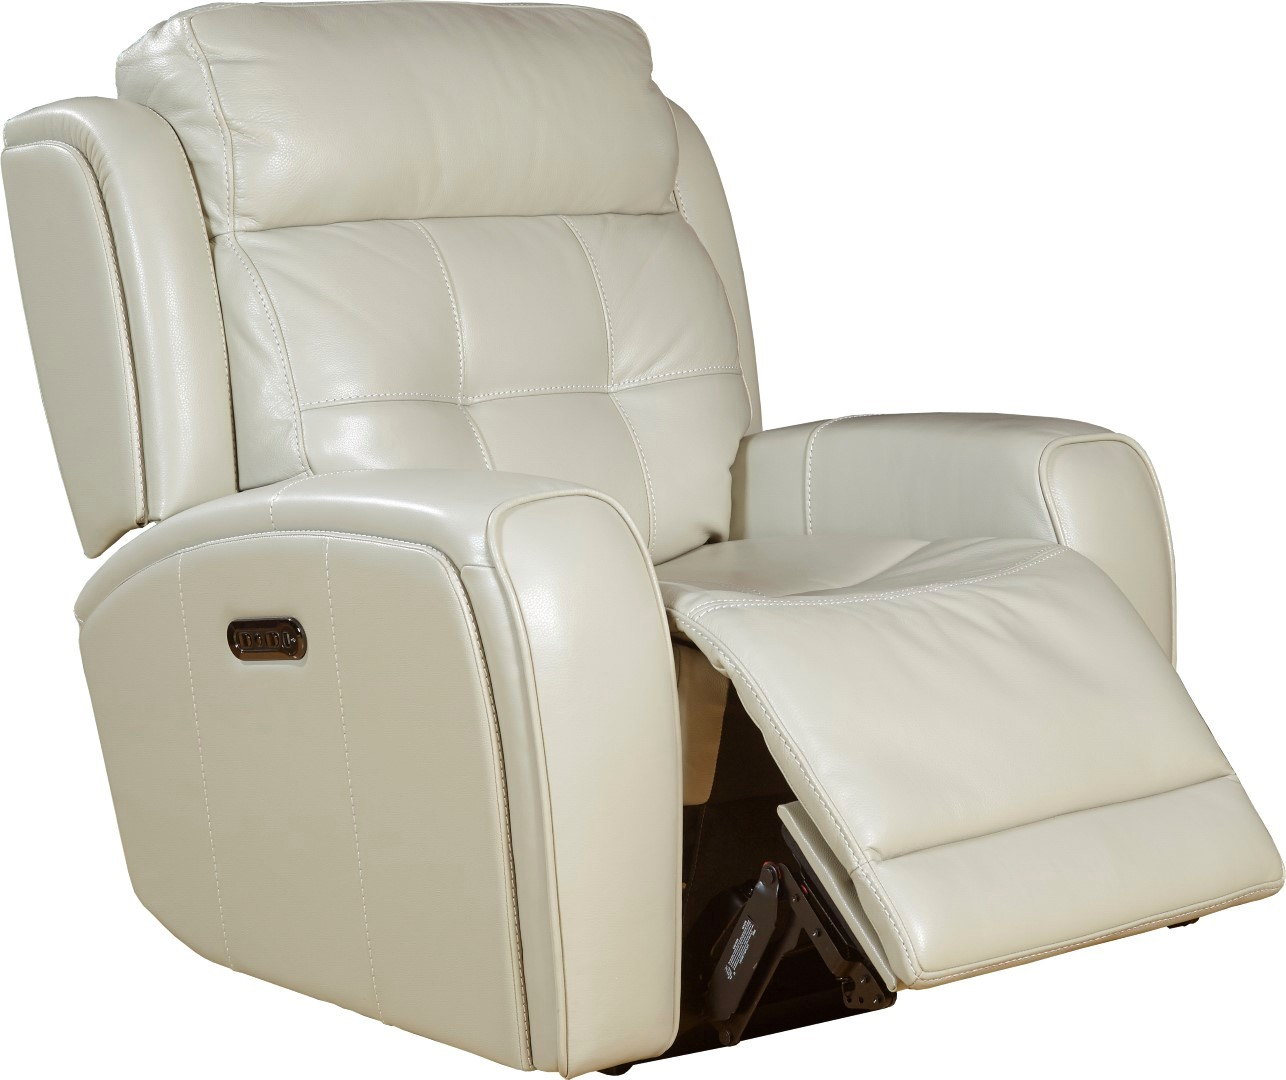 Everest Cloud Power Leather Recliner With Power Headrest